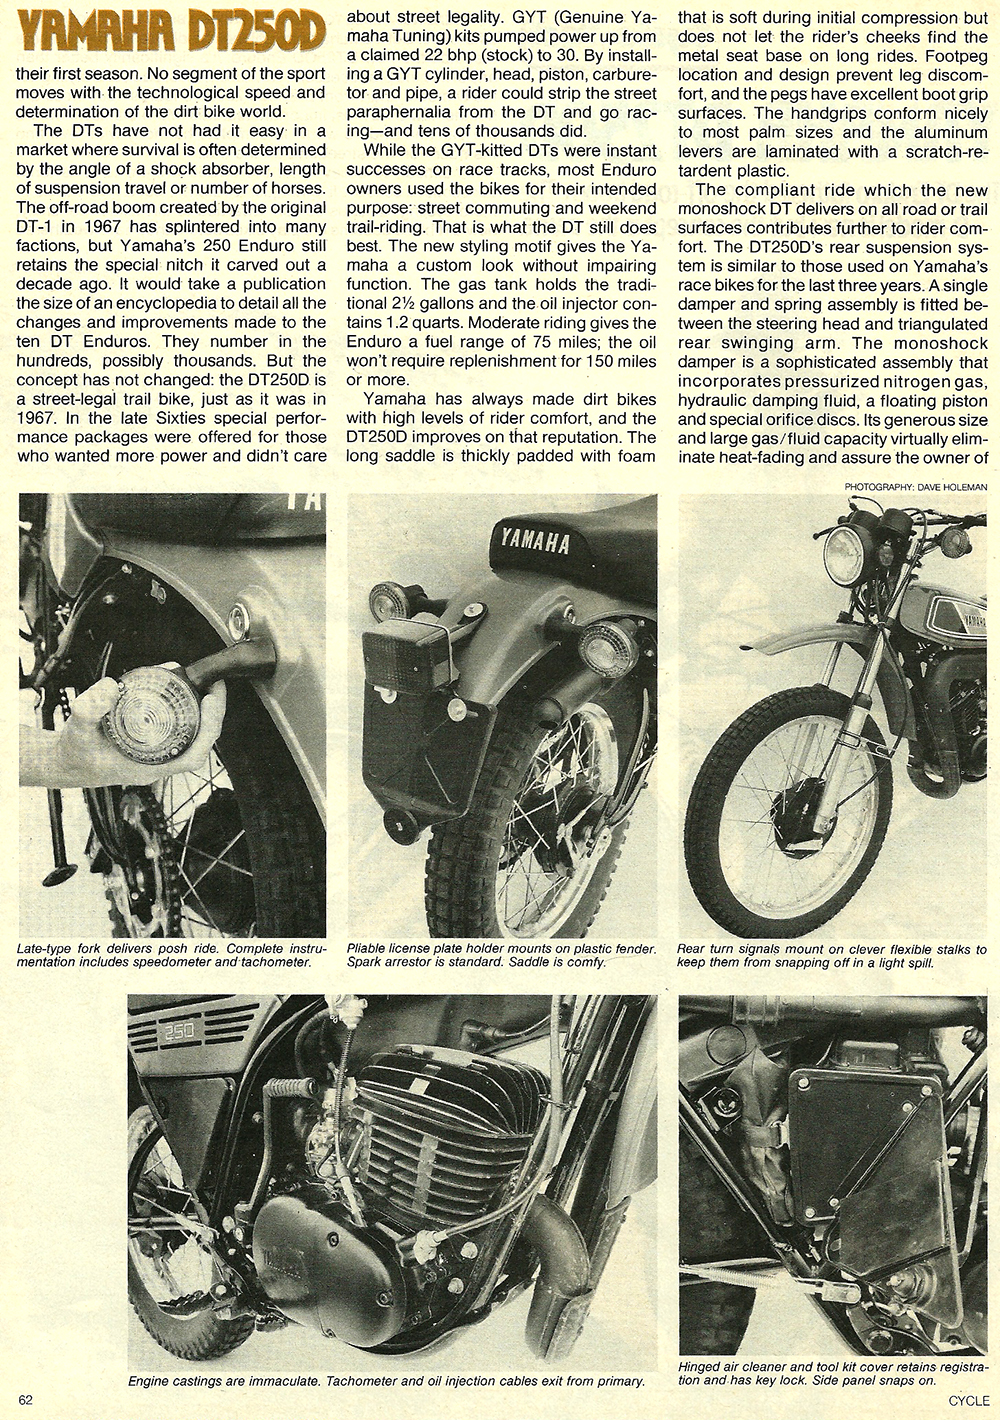 1977 Yamaha DT250D road test 2.jpg